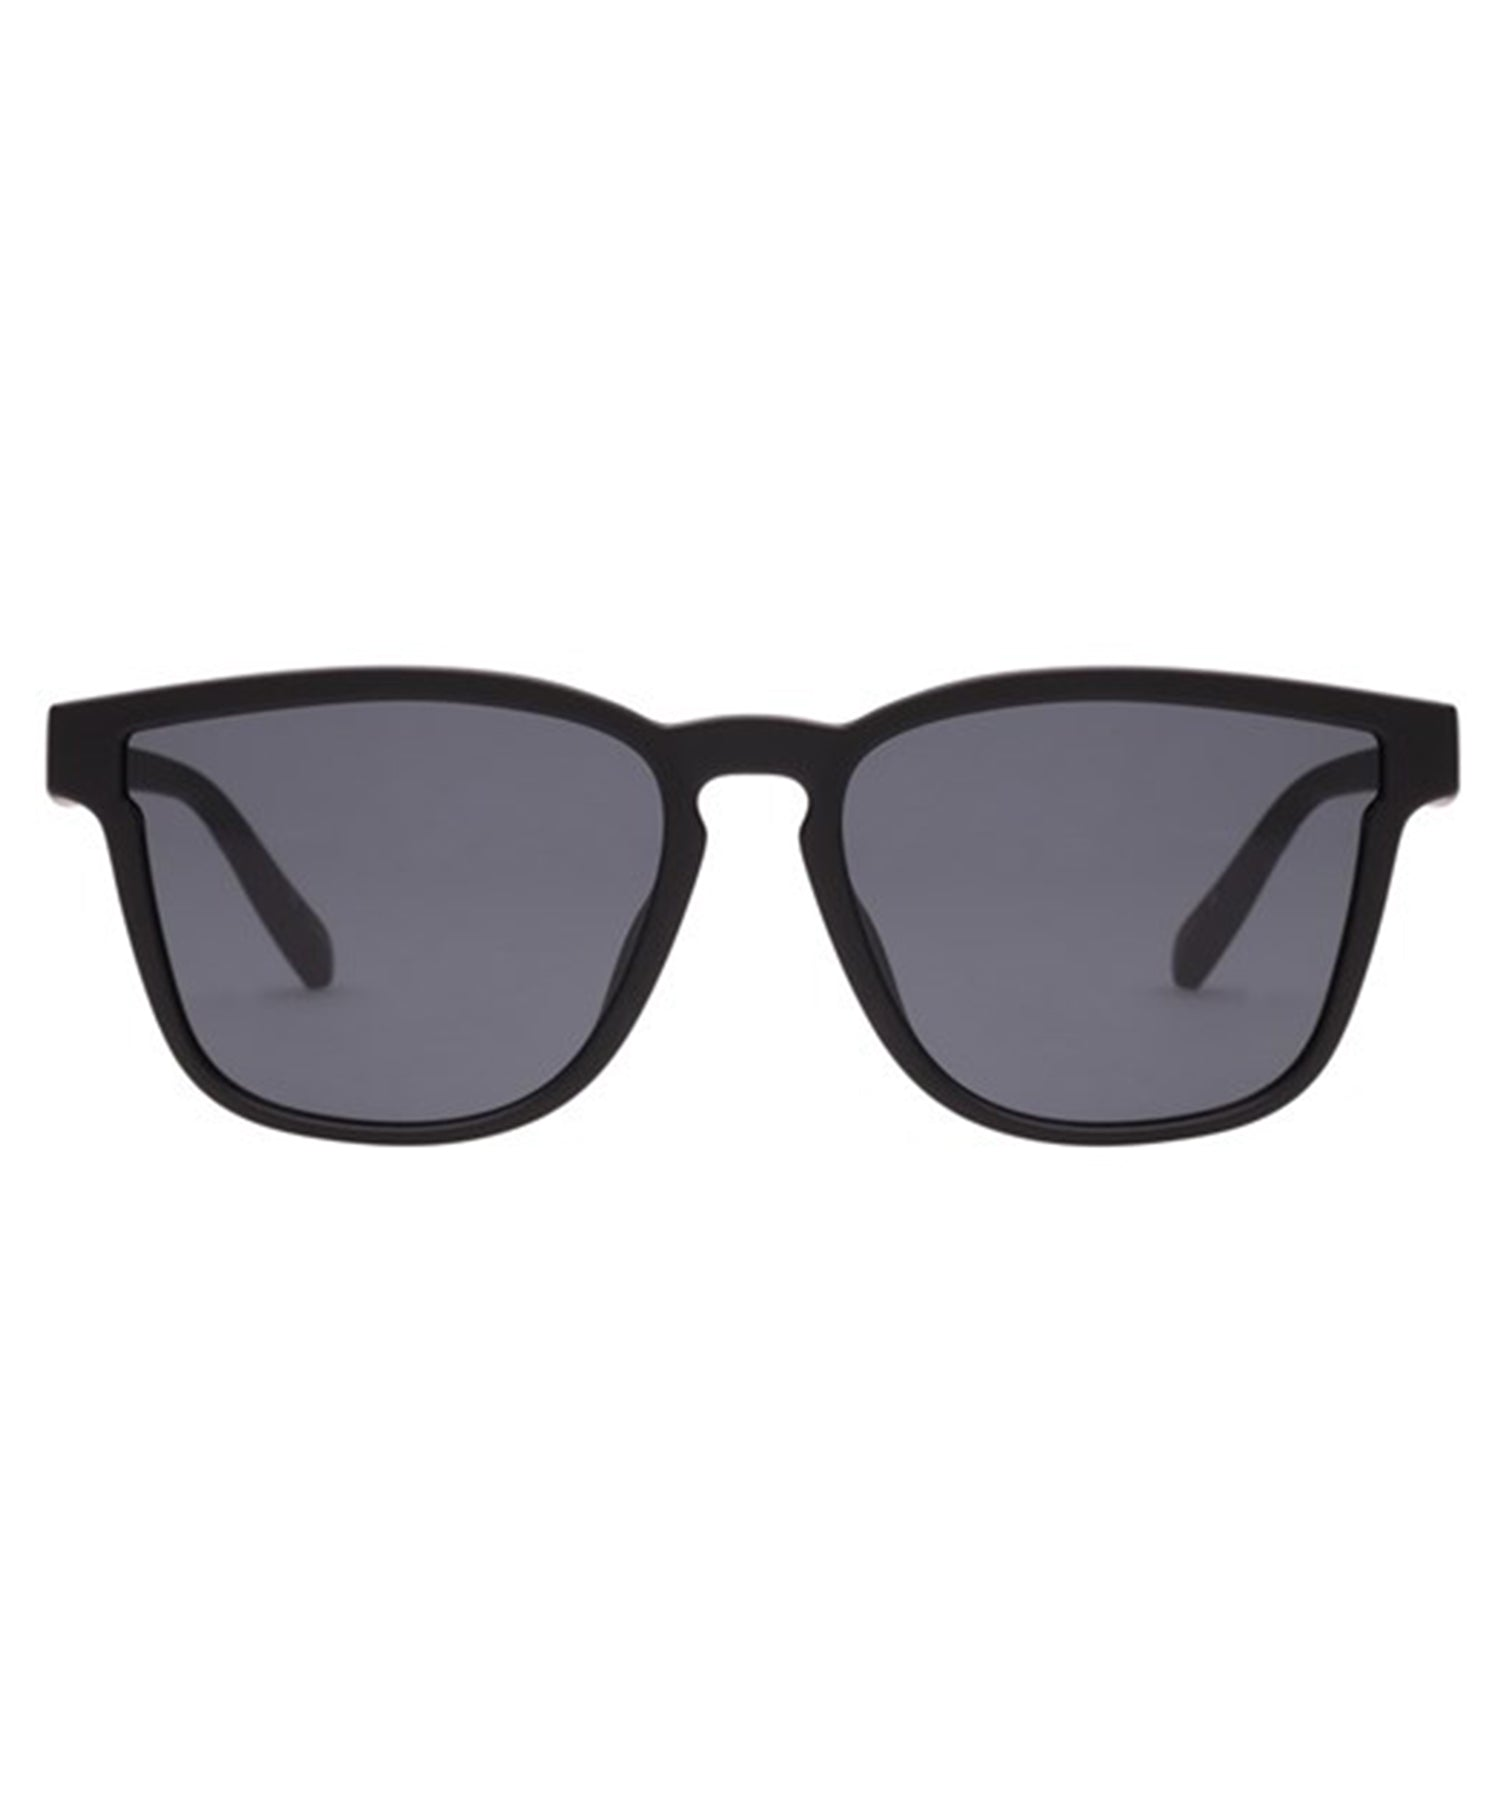 Le Specs History Sunglasses In Black Rubber